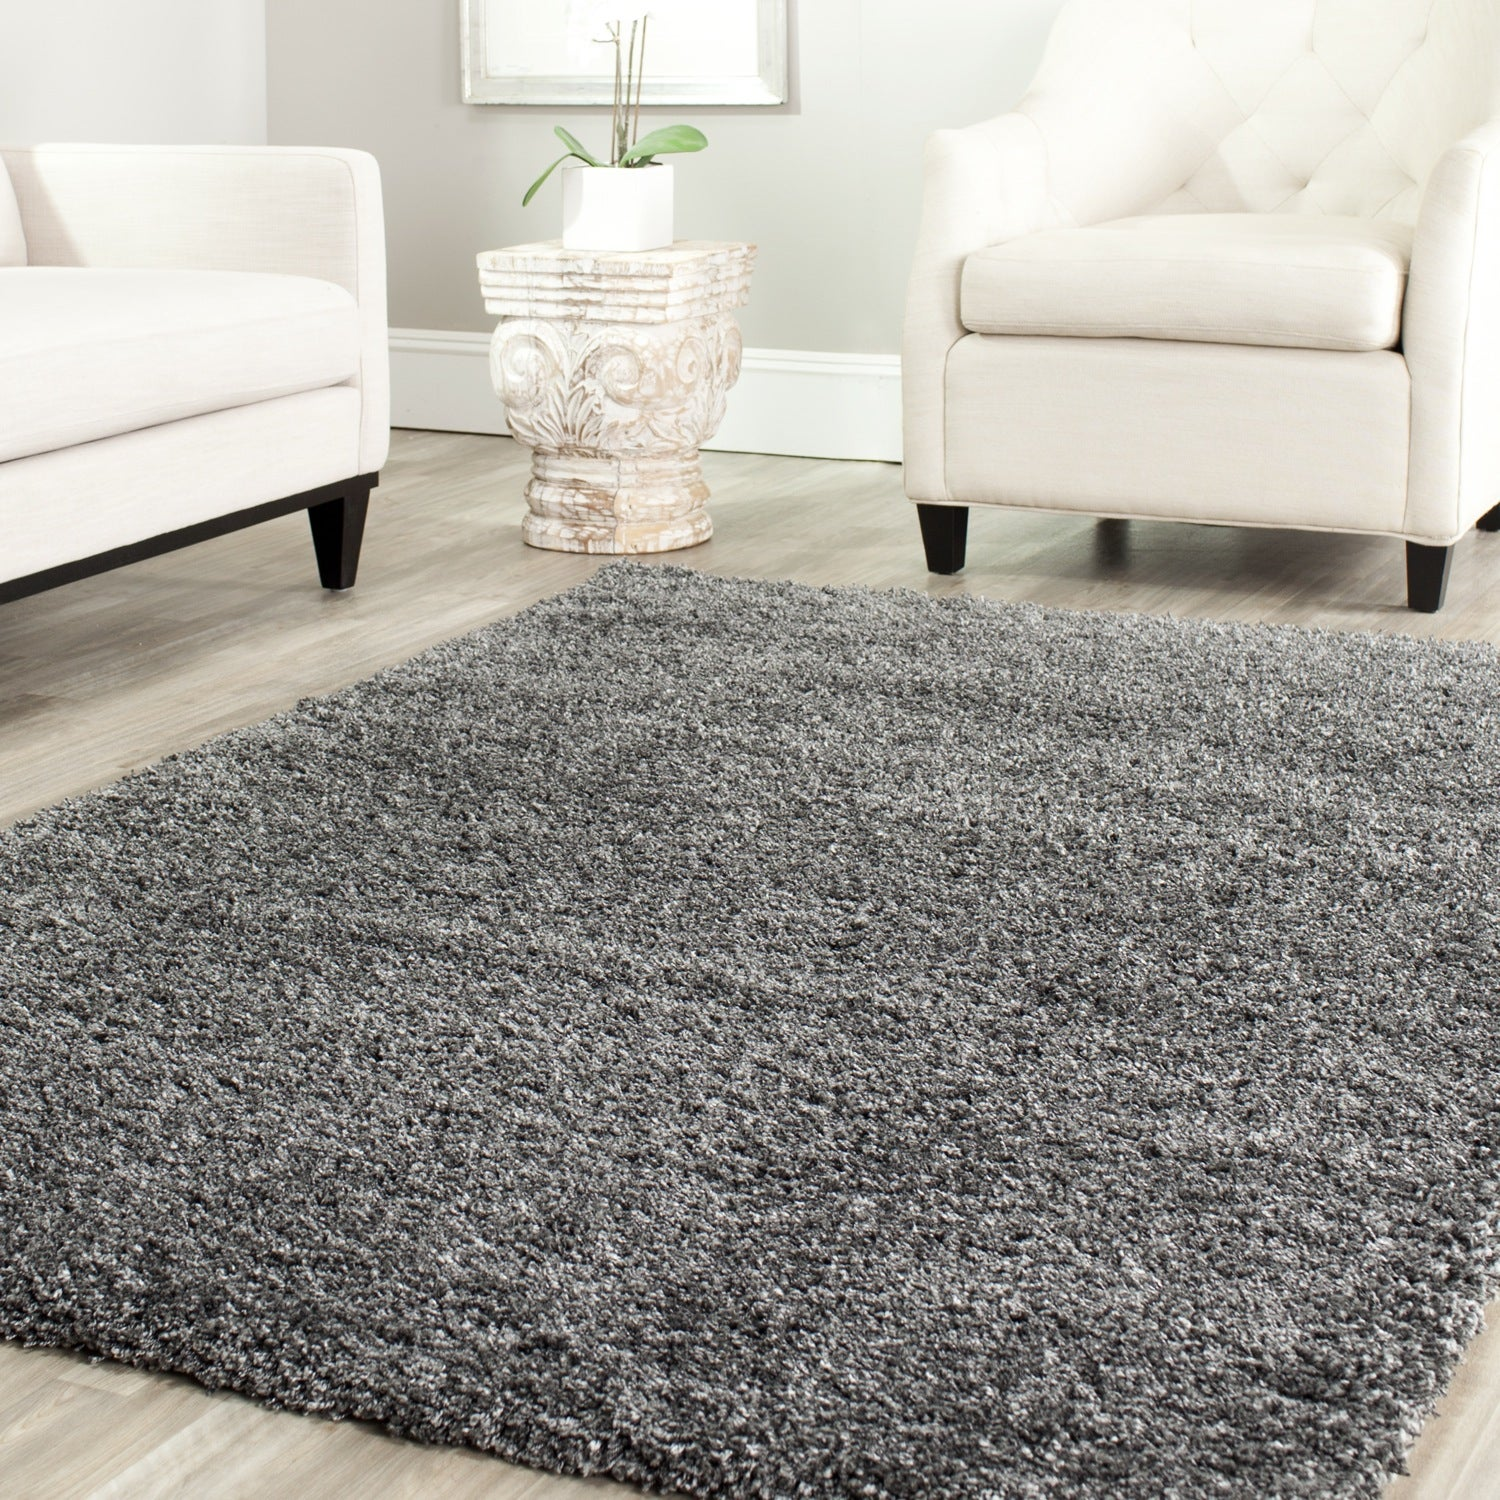 Safavieh Cozy Solid Dark Grey Shag Rug - Overstock Shopping - Great Deals on Safavieh 7x9 ...